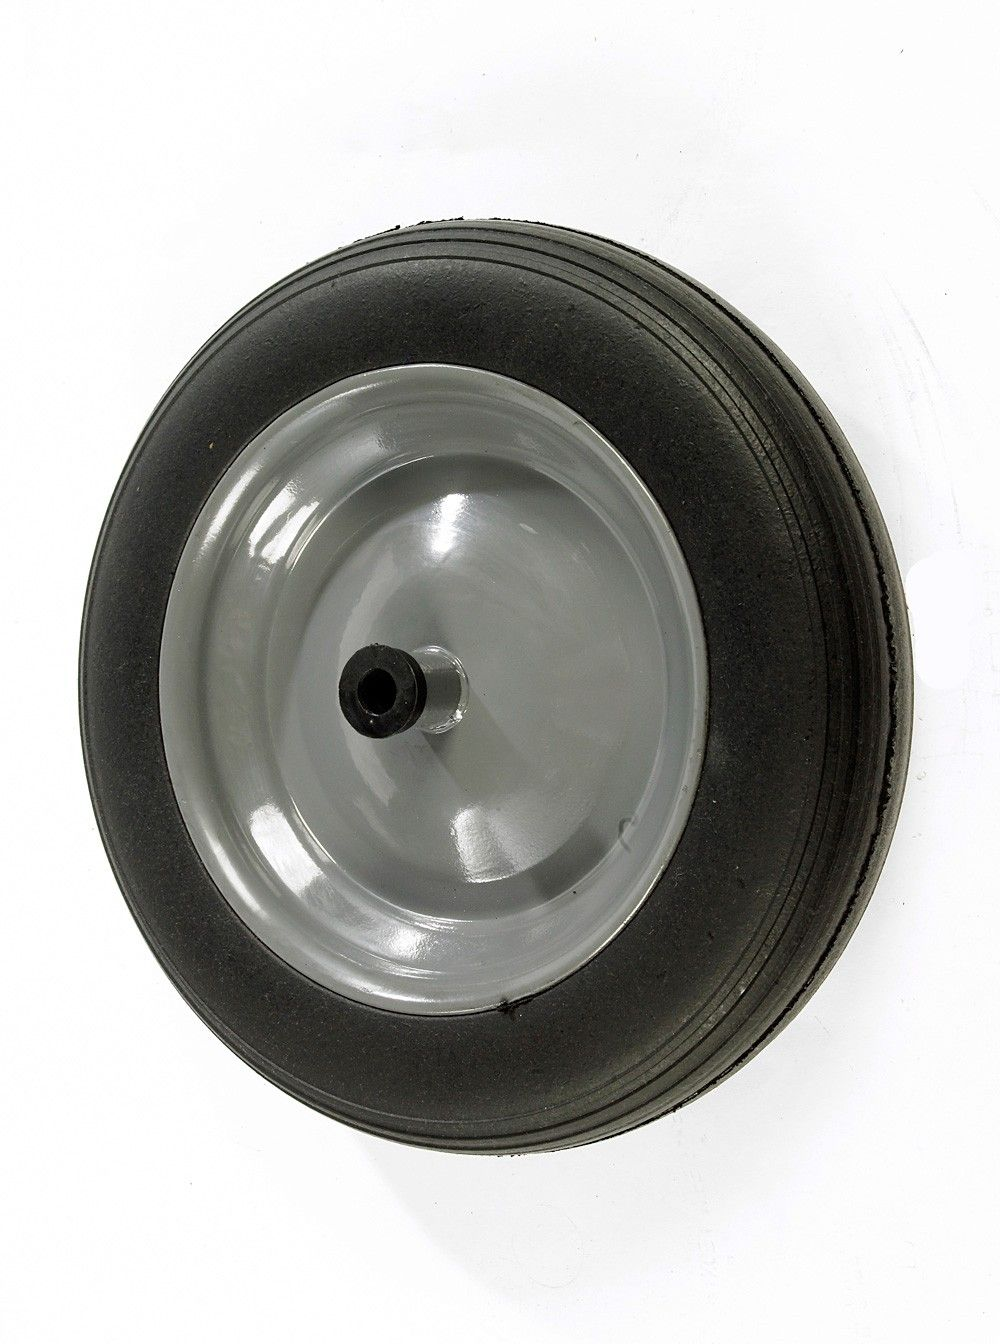 Chillington Solid Wheelbarrow Wheels Replacement 330mm 930900130 Wheelbarrow Wheels Wheelbarrow Spare Parts